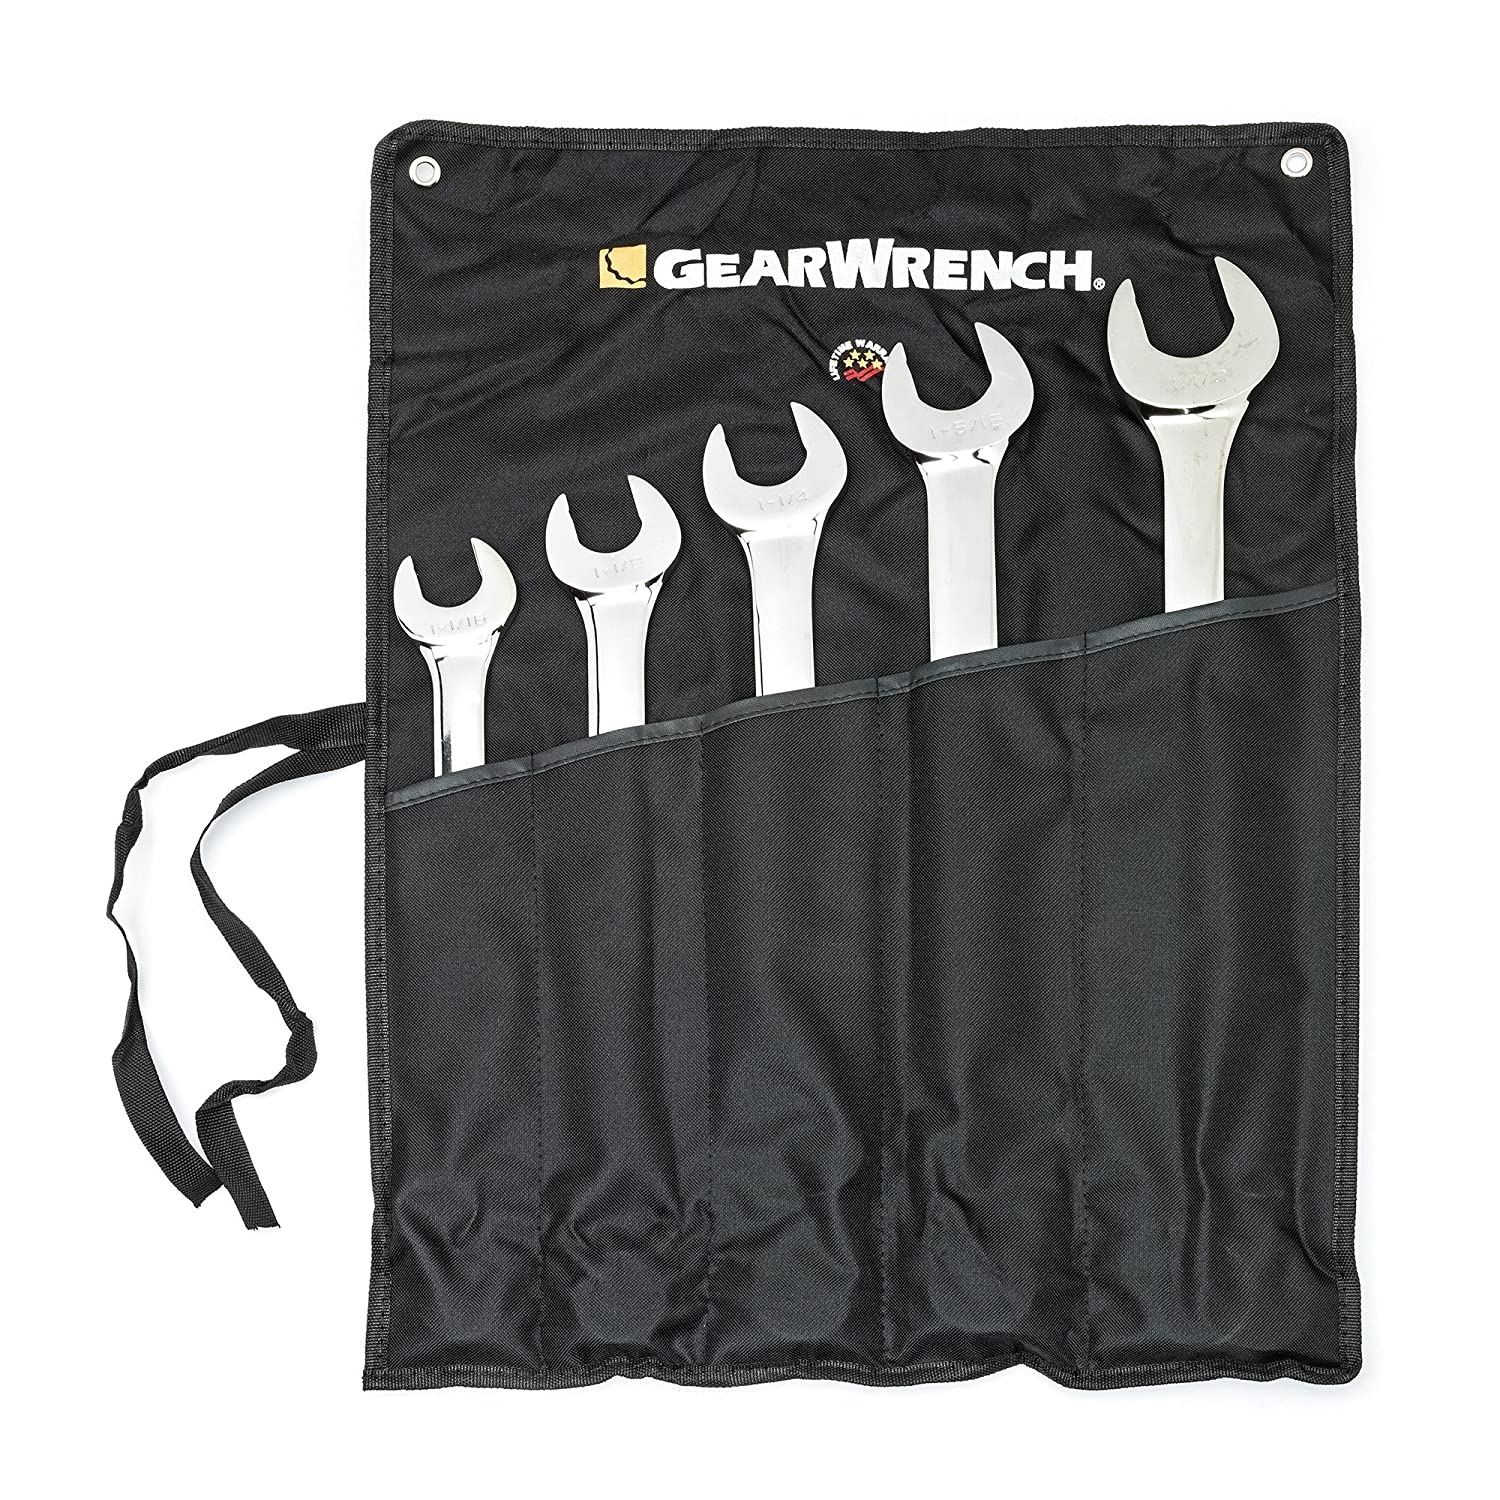 GEARWRENCH 5 Pc. SAE 12 Point Long Pattern Combination Wrench Set - 81921